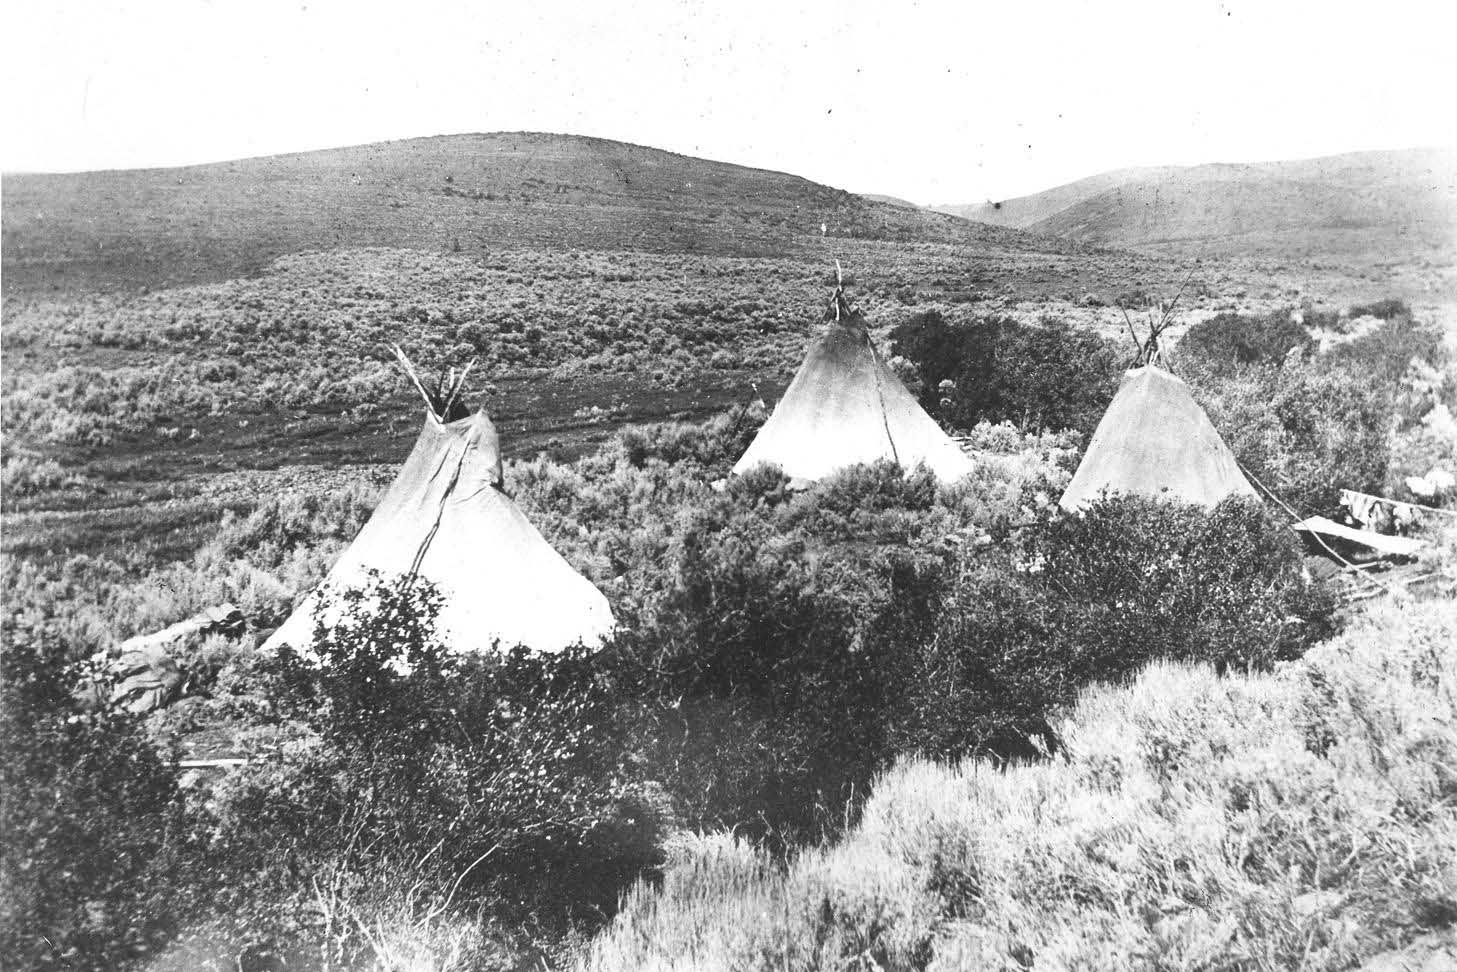 Camped_in_the_sage